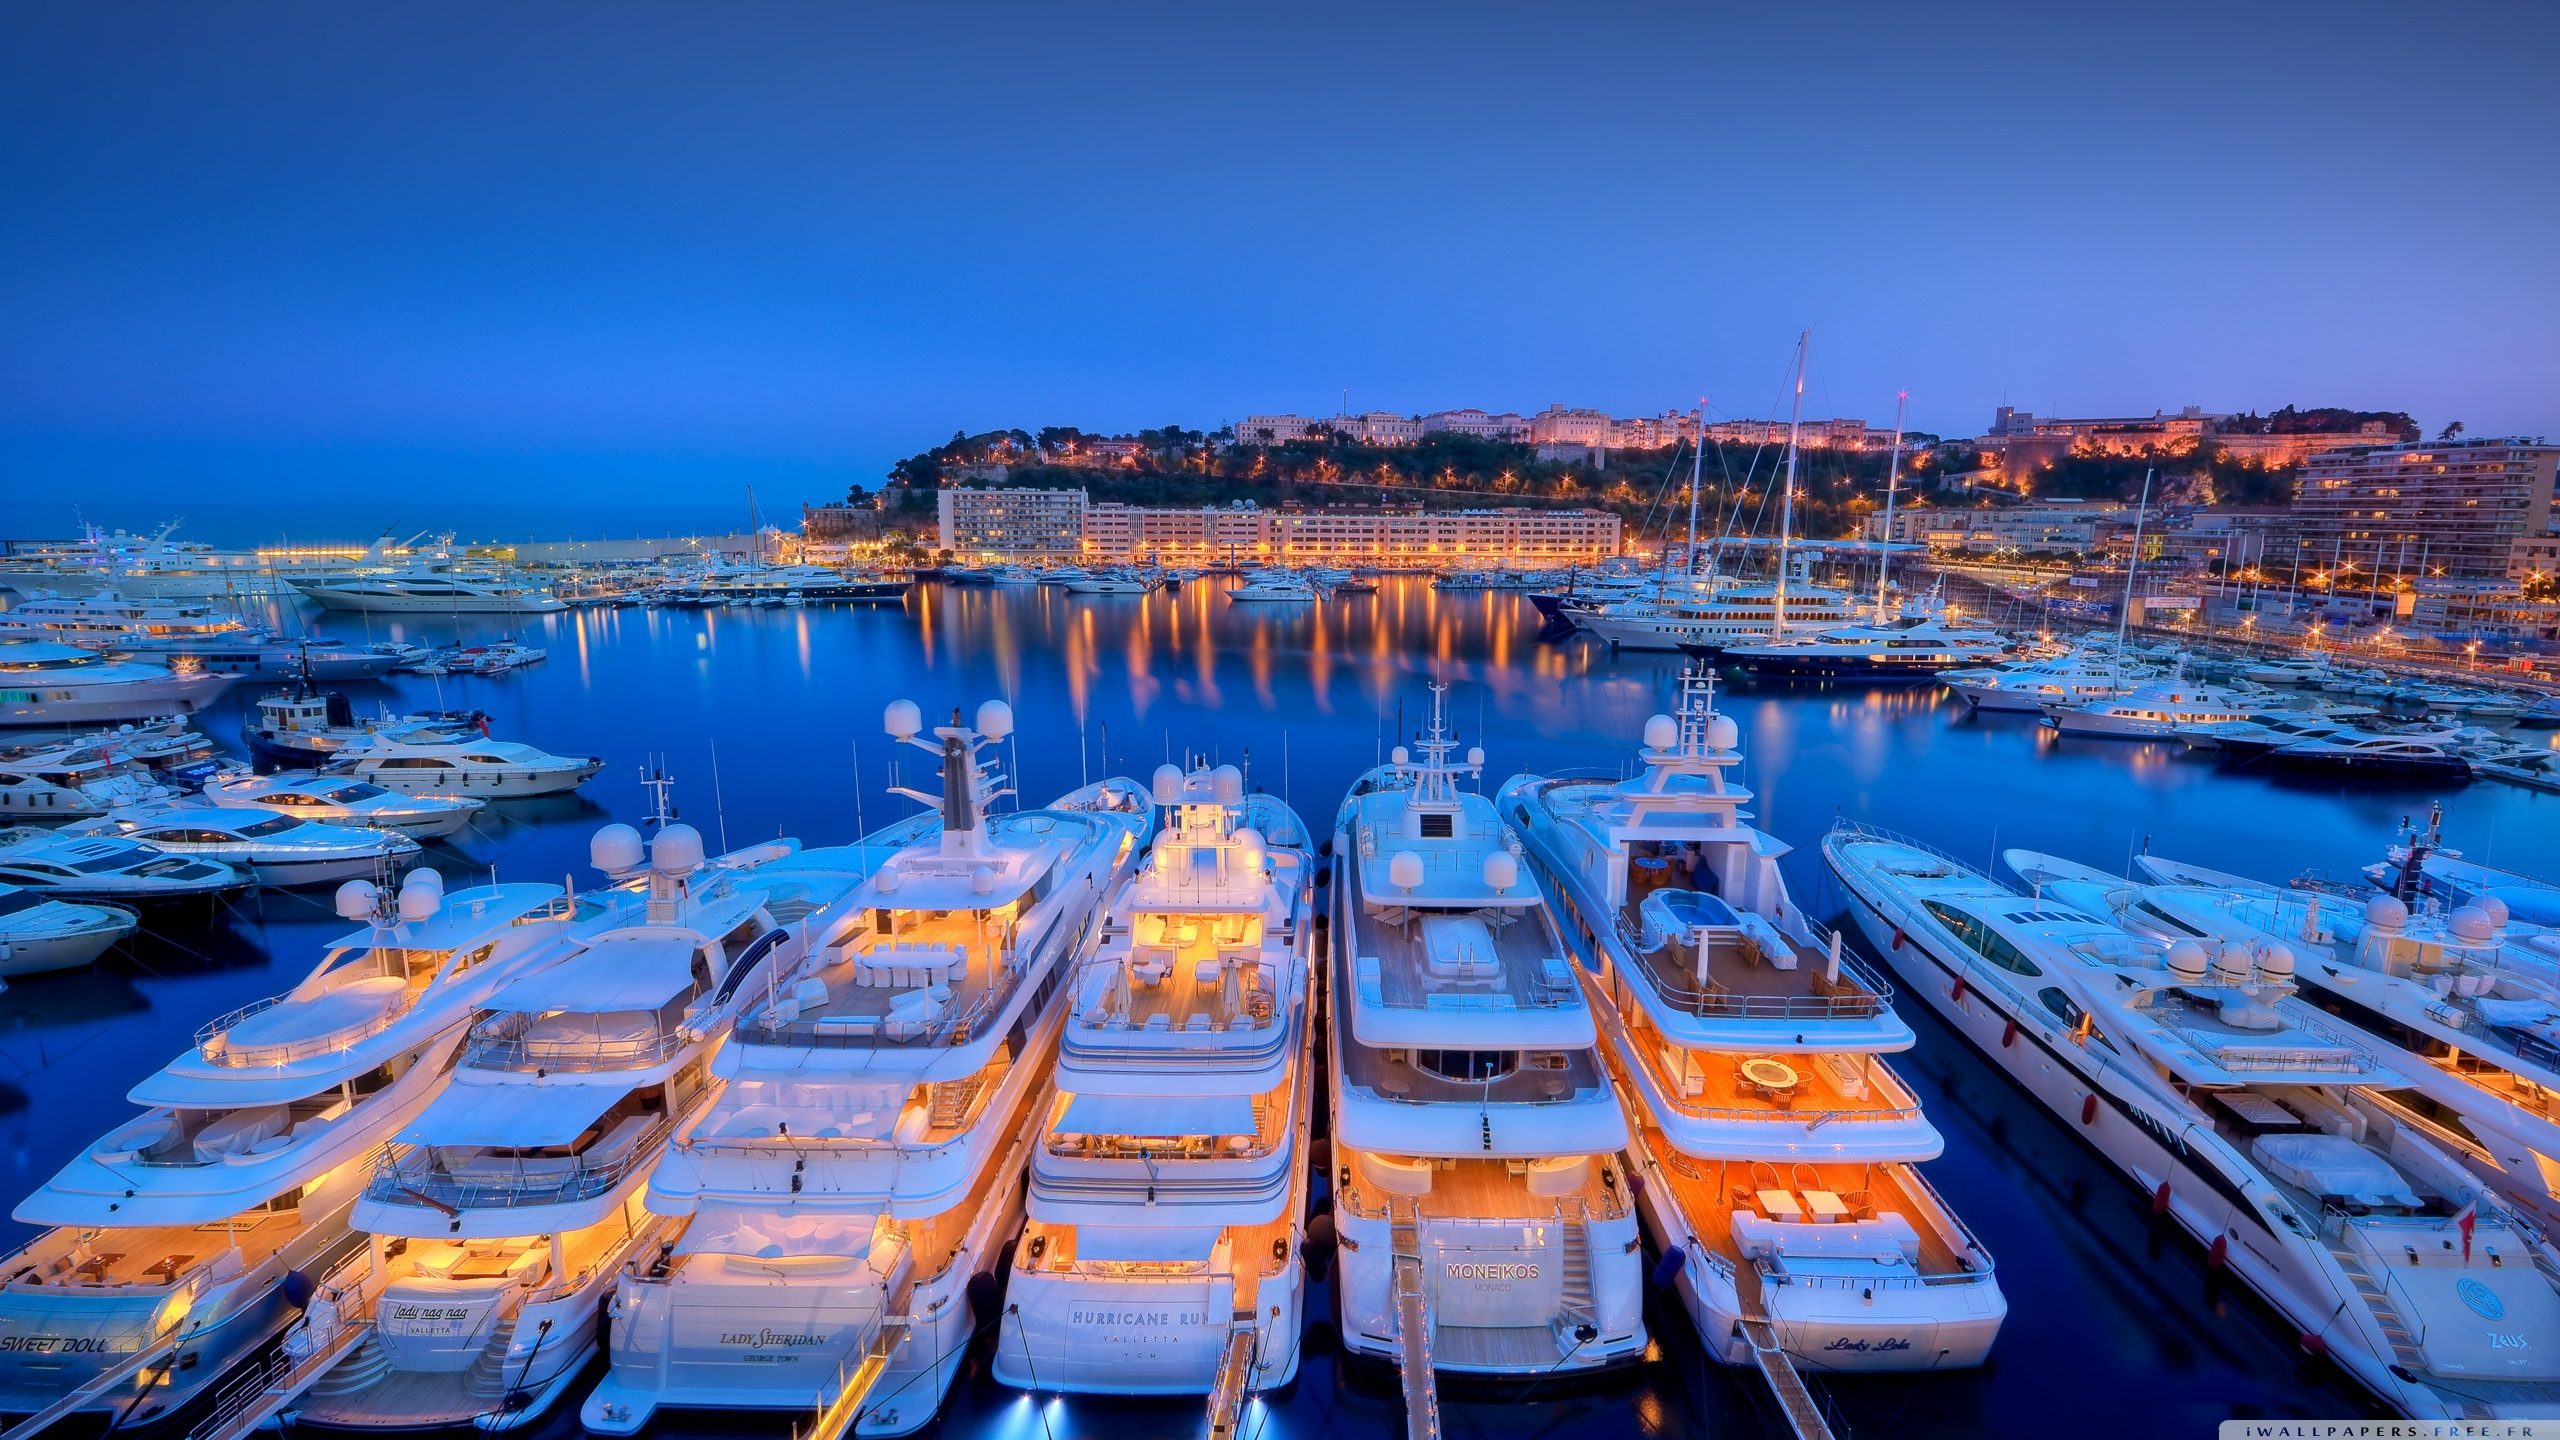 yachts_at_night-wallpaper-2560x1440.jpg